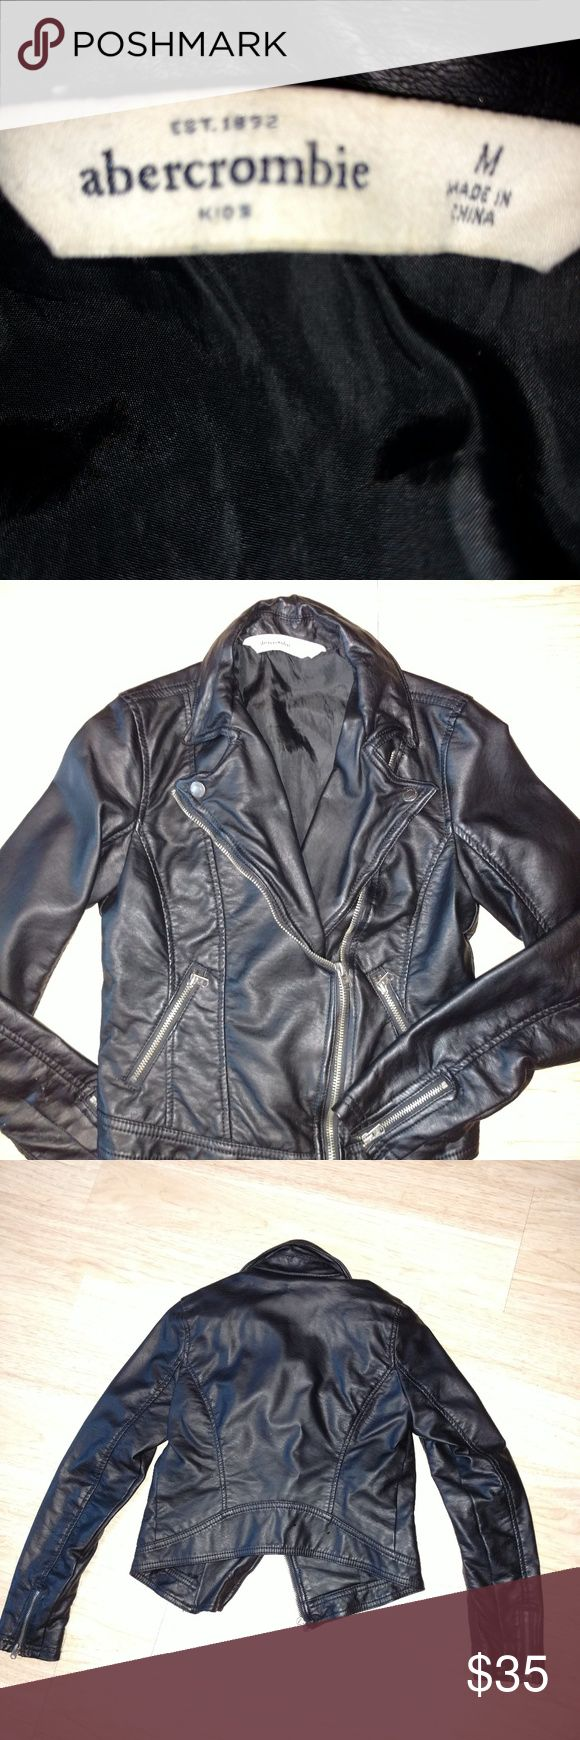 abercrombie girls leather jacket faux size medium Girls size medium Abercrombie faux leather Moto jacket excellent condition fits size 10/12 measures 16 inch length 13 inch chest abercrombie kids Jackets & Coats